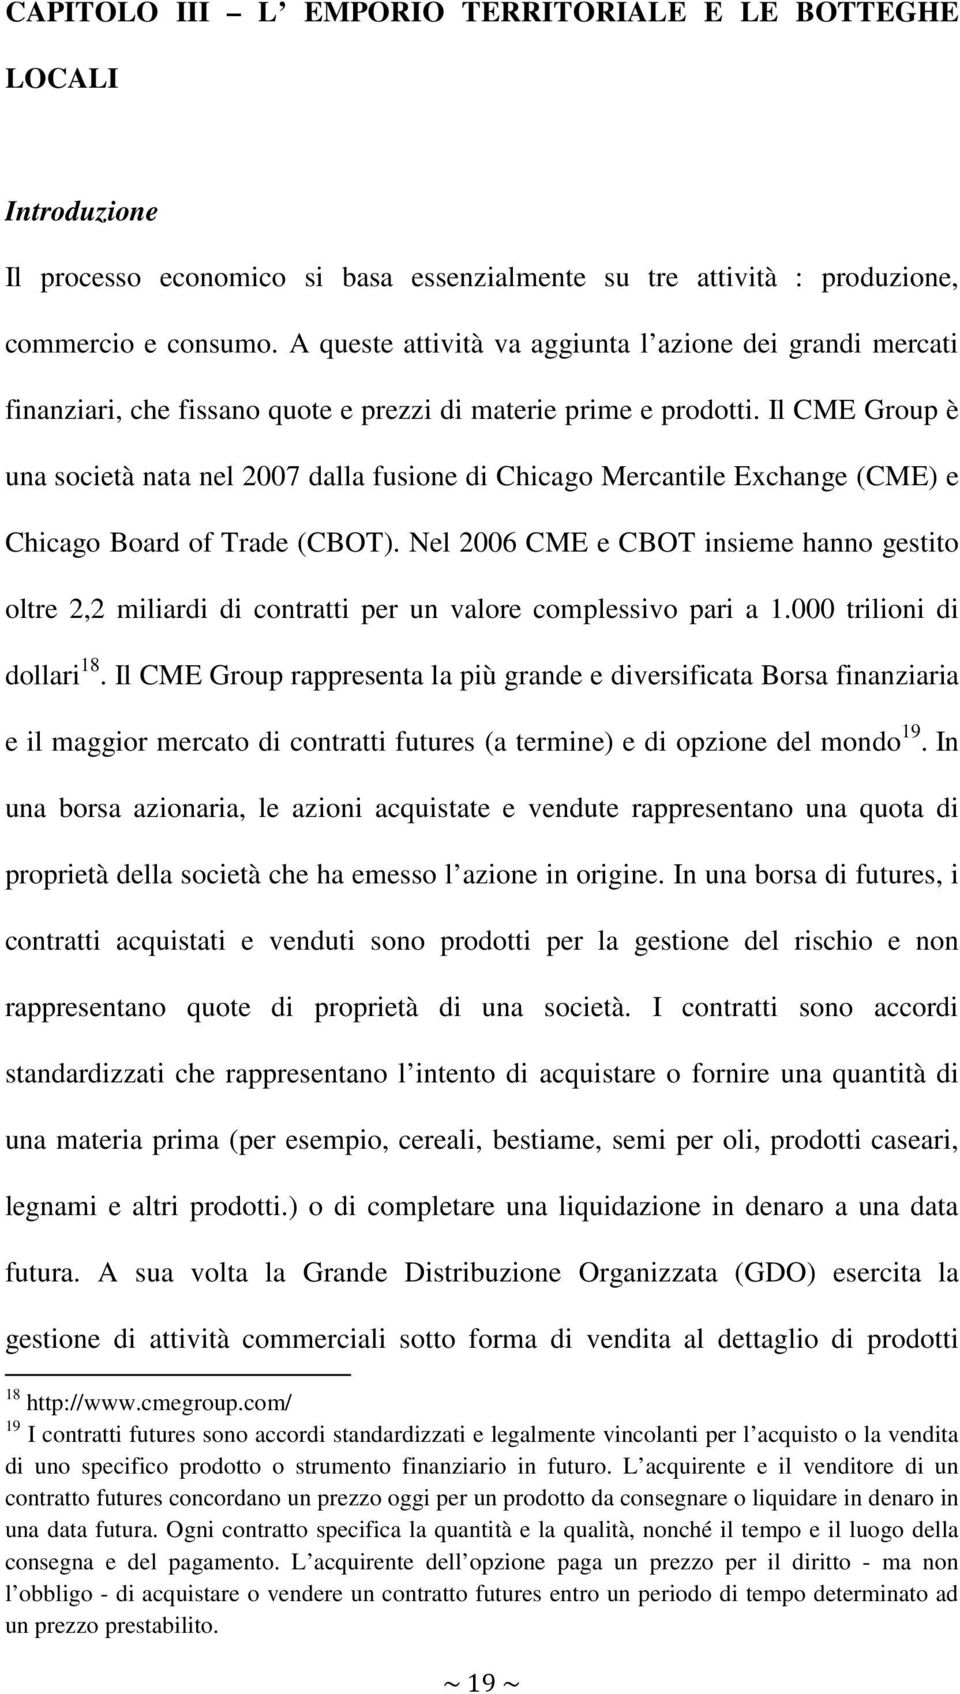 Il CME Group è una società nata nel 2007 dalla fusione di Chicago Mercantile Exchange (CME) e Chicago Board of Trade (CBOT).